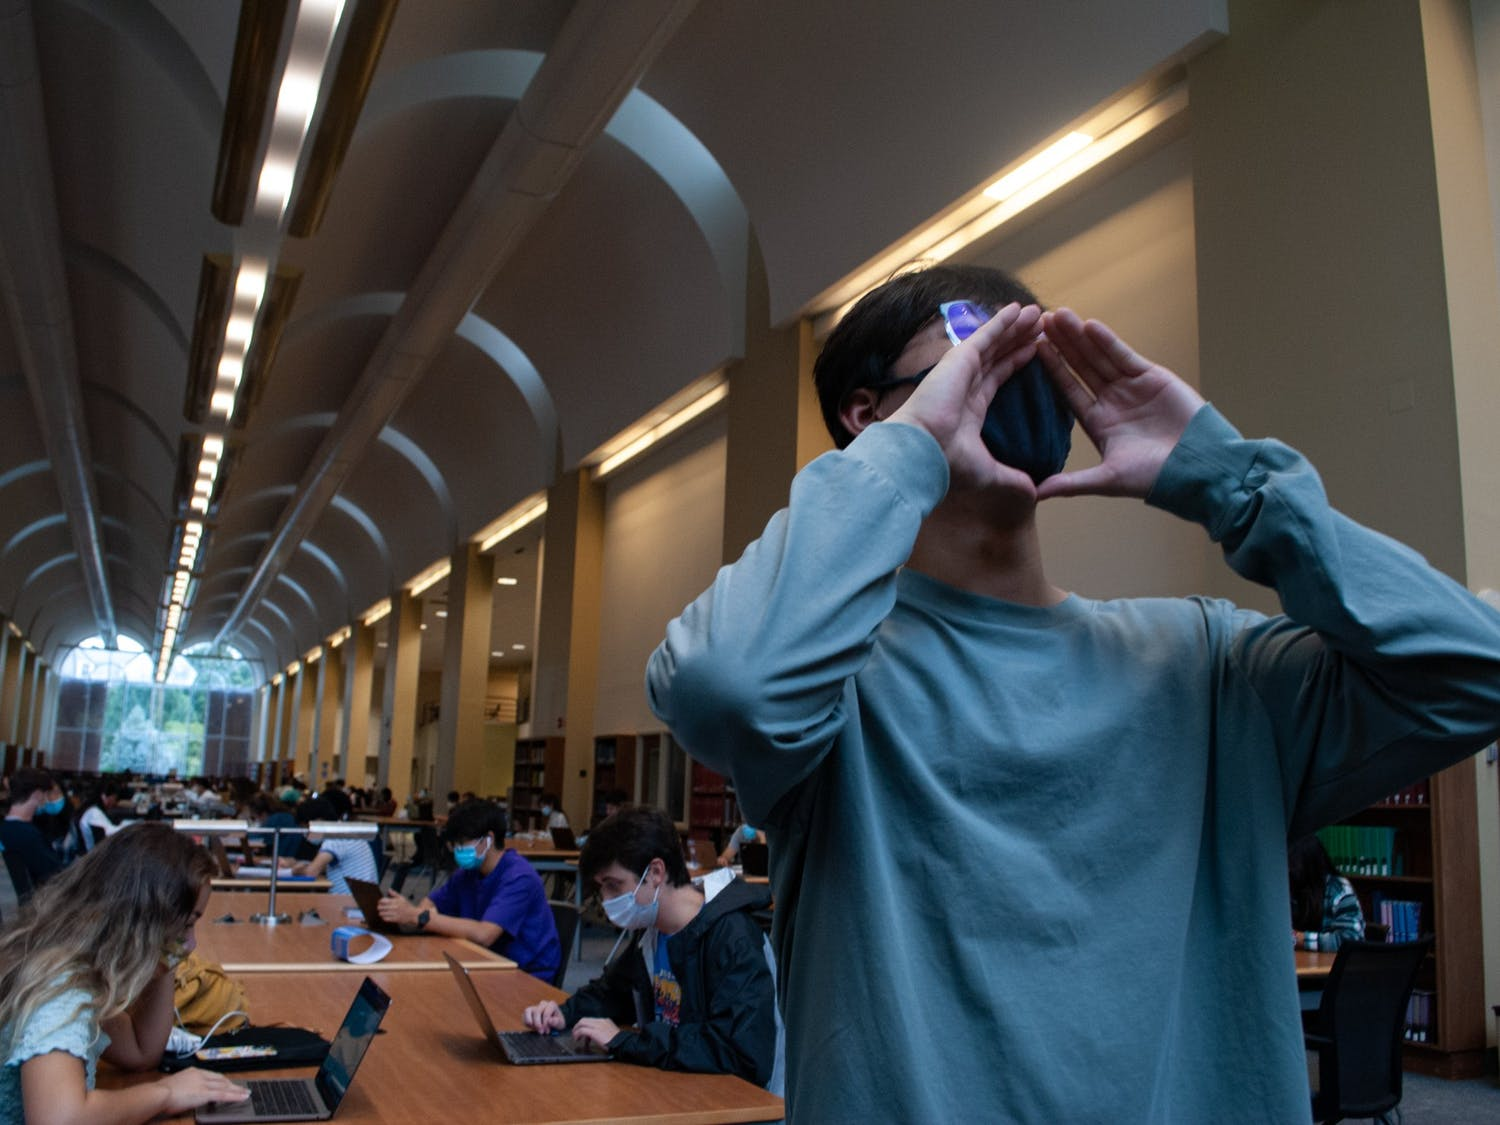 Second year exercise and sports science major Jordan Han causes a ruckus in a quiet first floor of Davis Library. Listening sessions were held on Oct. 7 and Oct. 8 for student to discuss the volume levels in Davis Library.